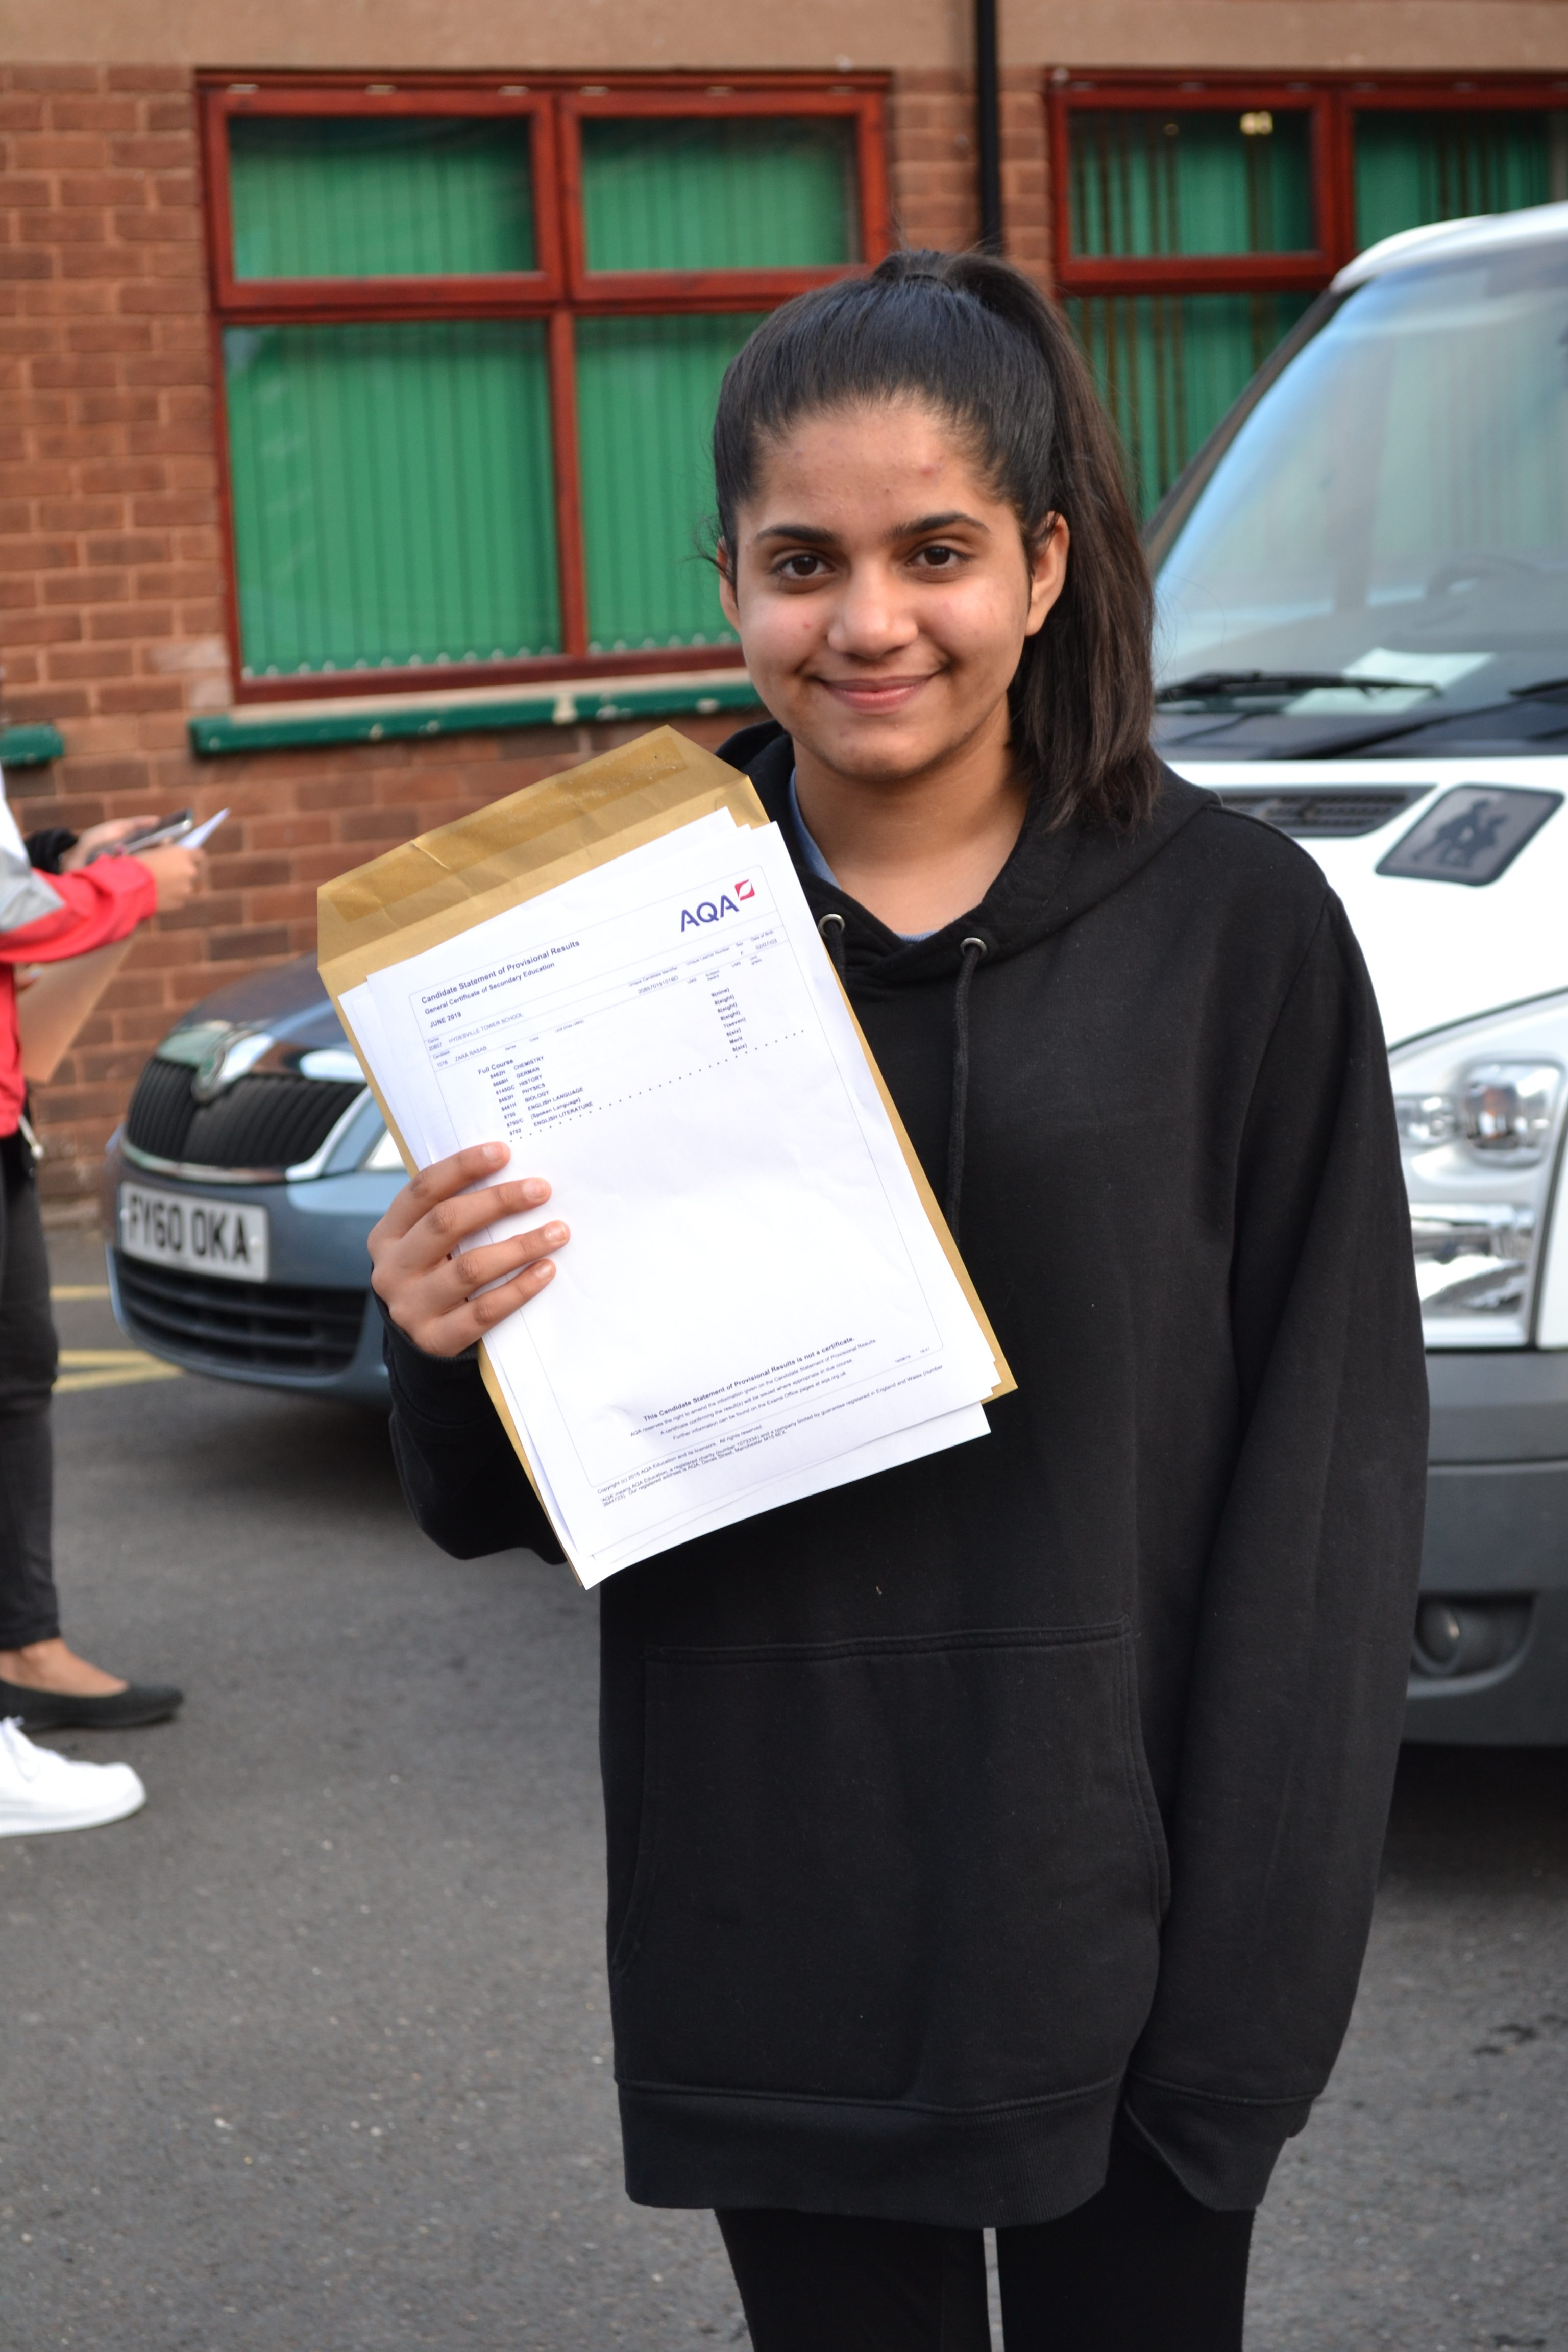 British Asian students celebrate as GCSE results released